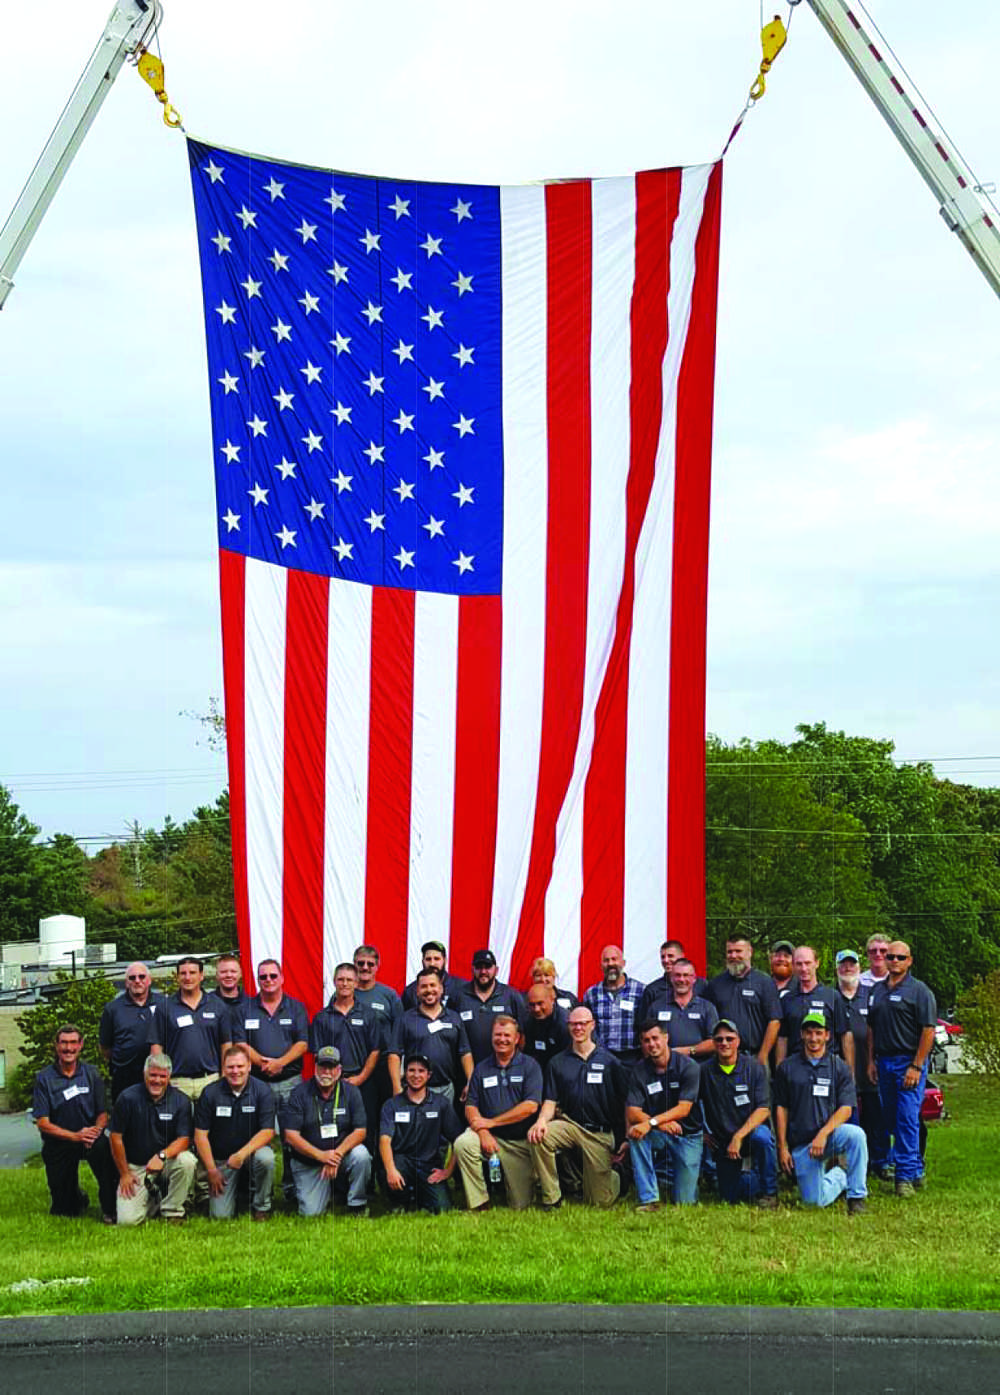 Schmidt Equipment's employees show their pride with this over-sized American flag.